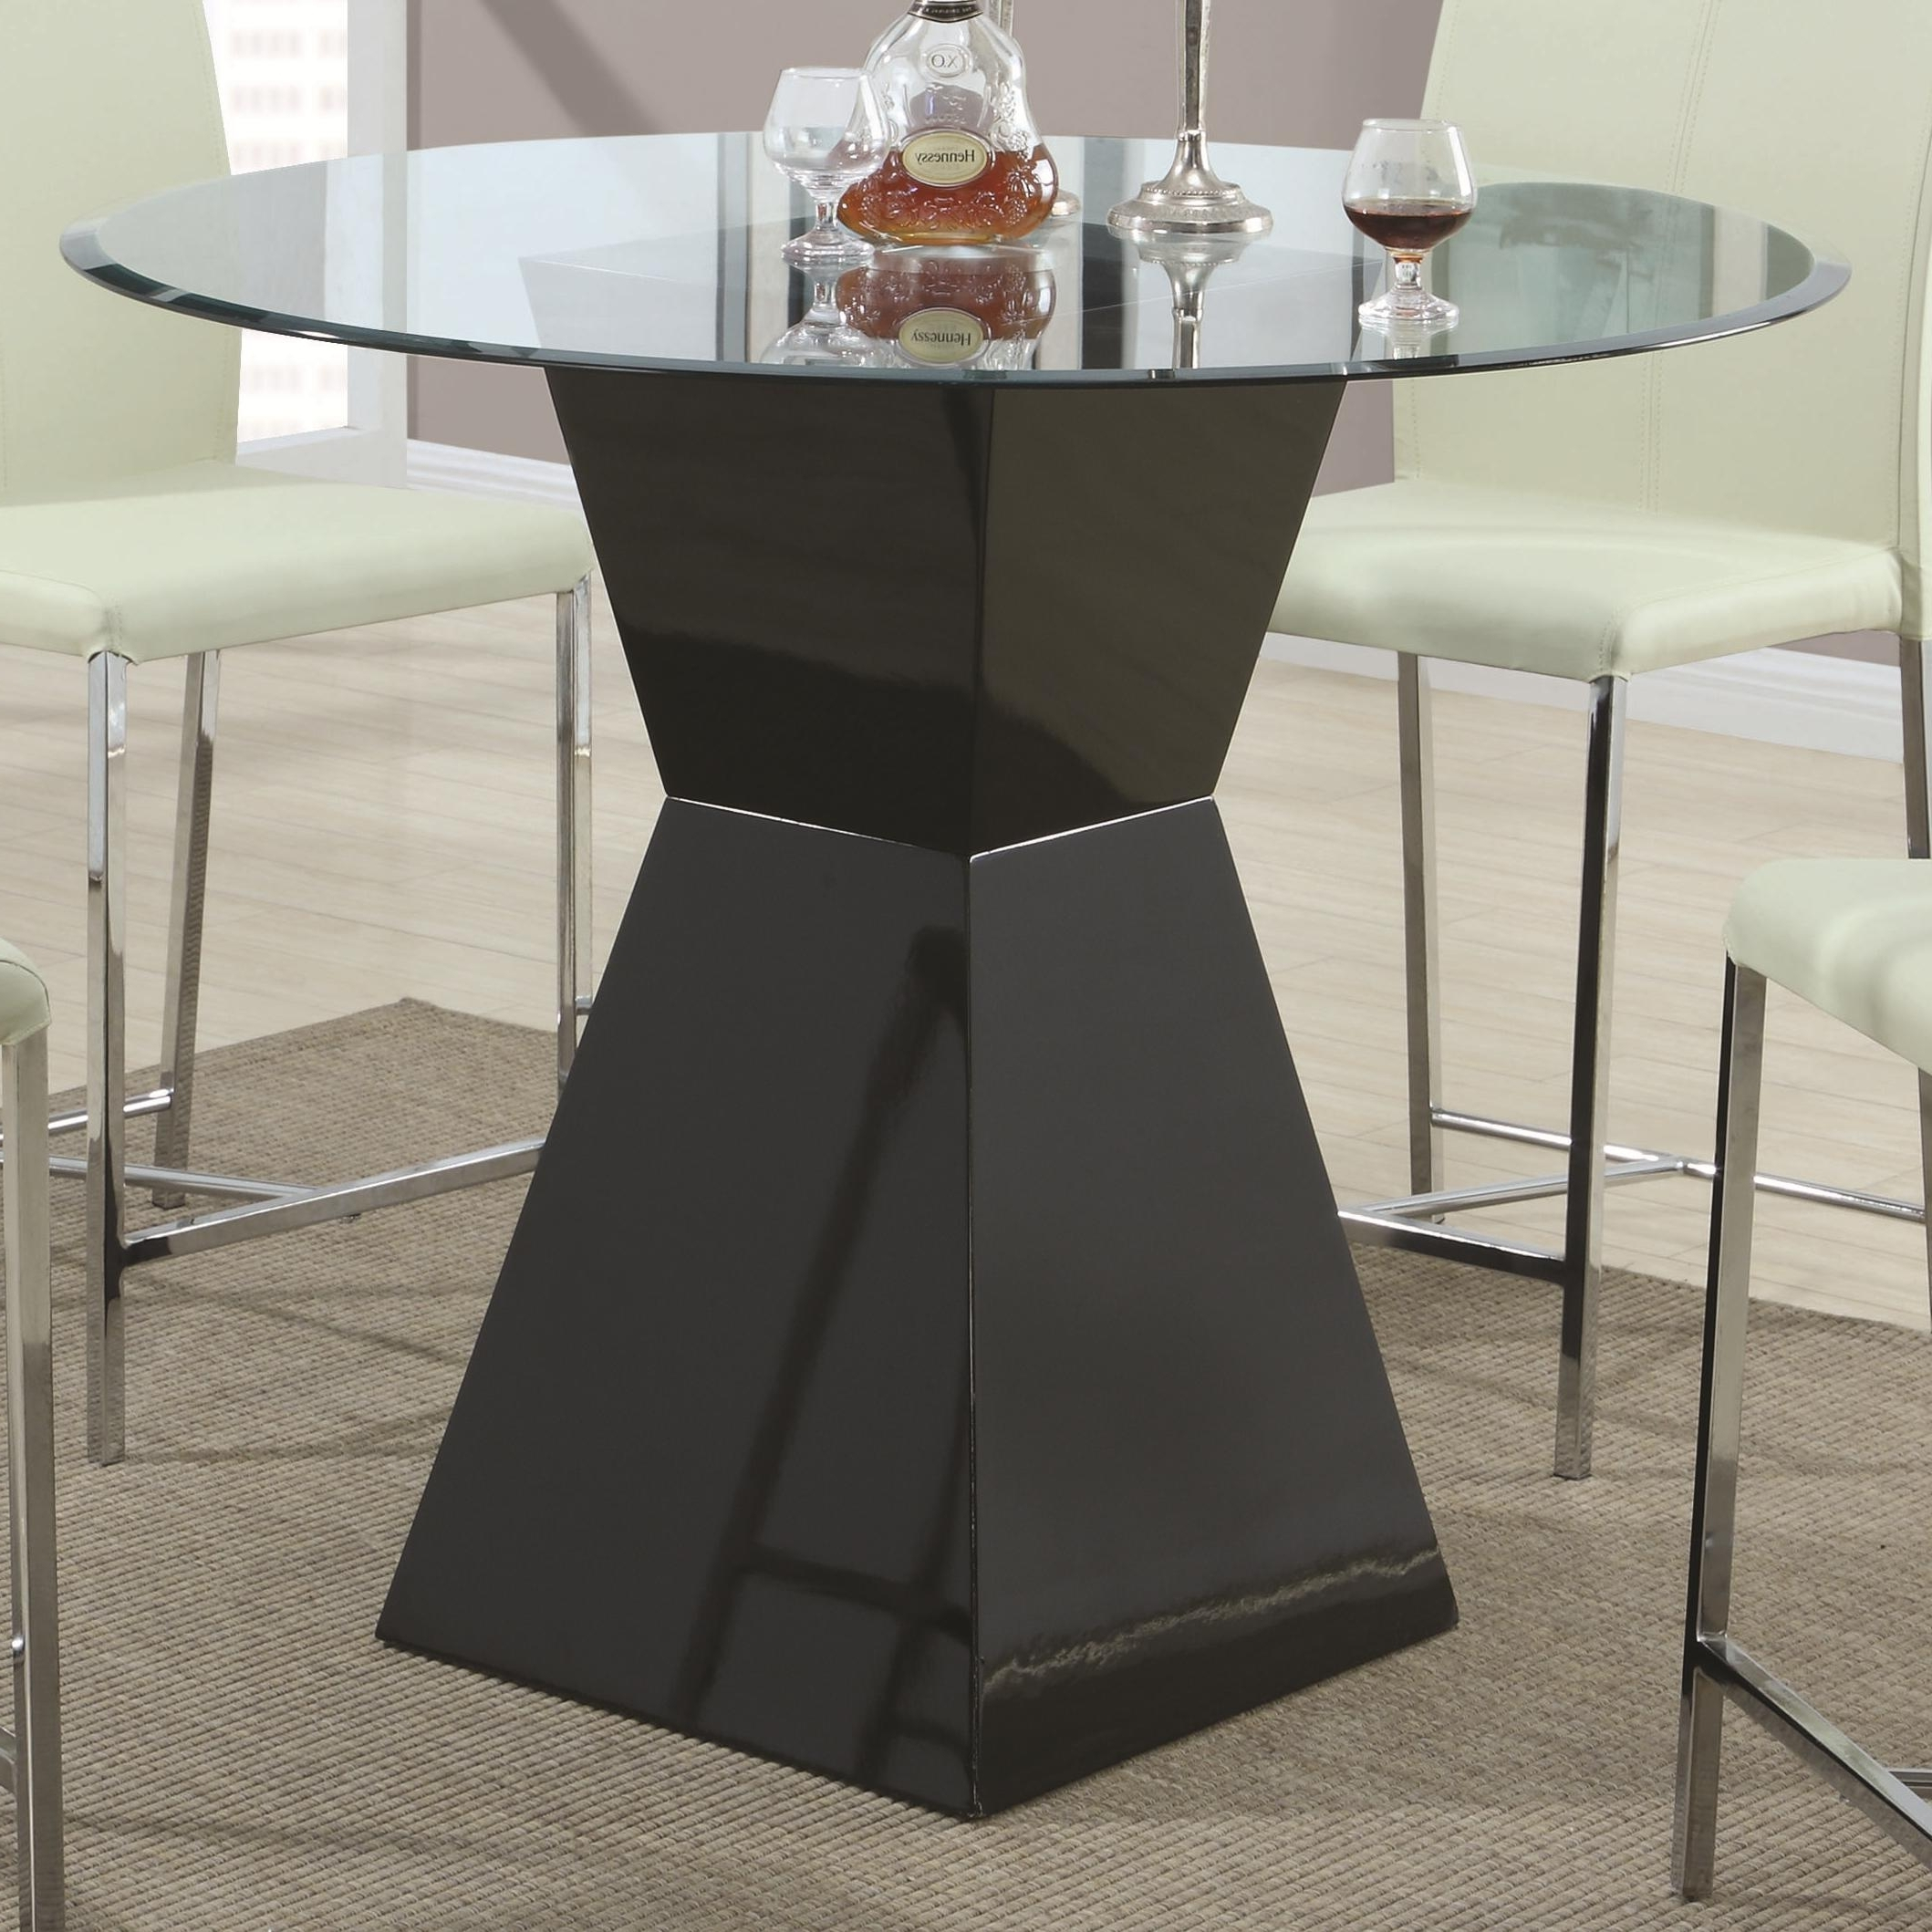 Latest Square Black Glass Dining Tables Regarding Round Glass Dining Table With Square Black Wooden Base On Grey Rug (View 21 of 25)